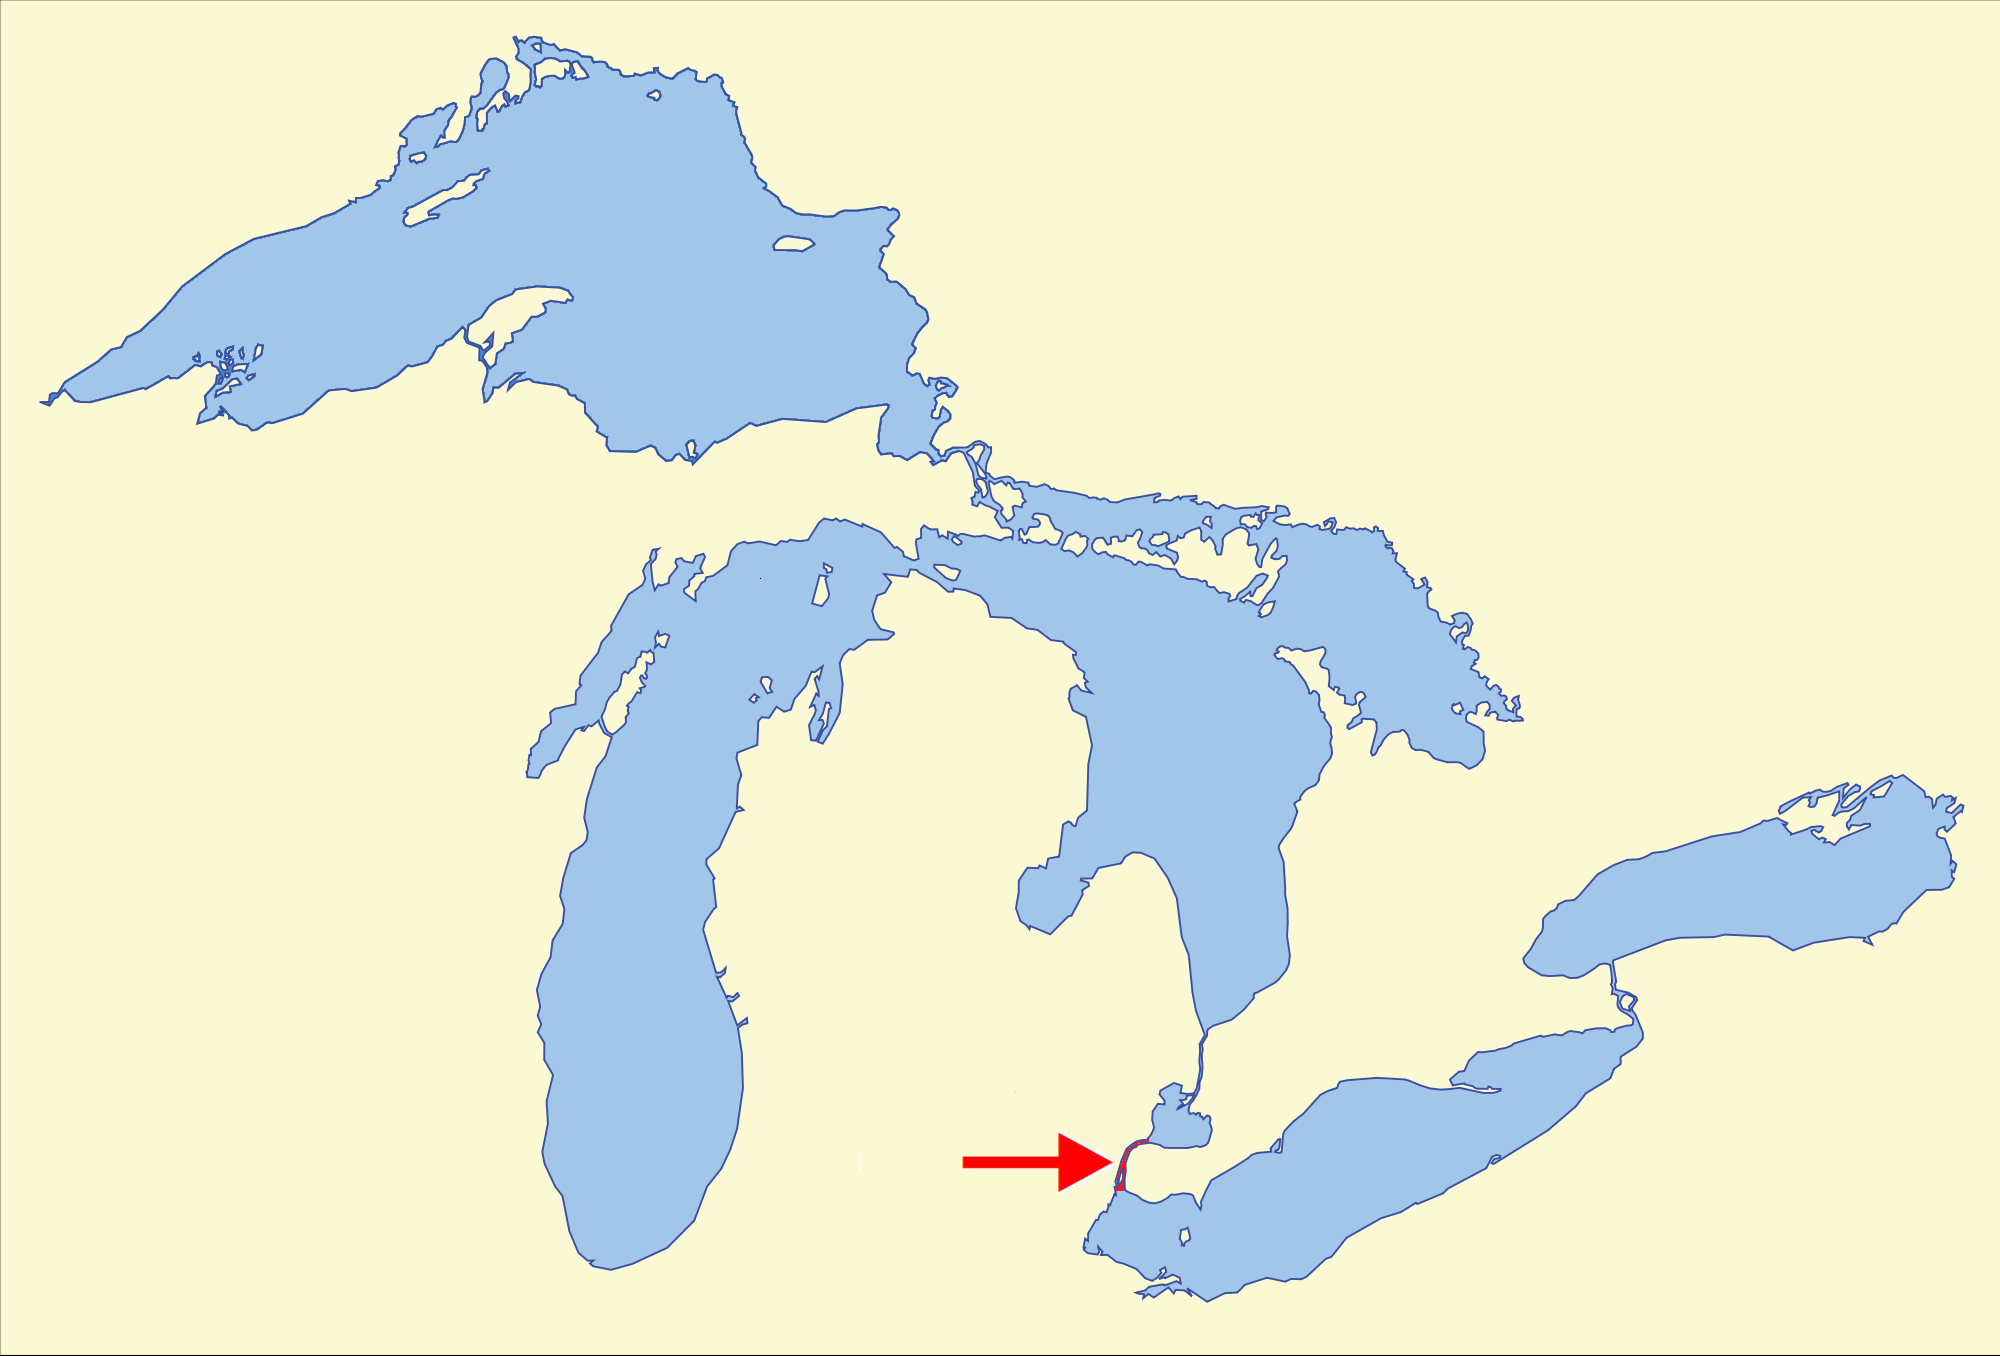 FileDetroitRiverpng Wikimedia Commons - Us lakes and rivers map